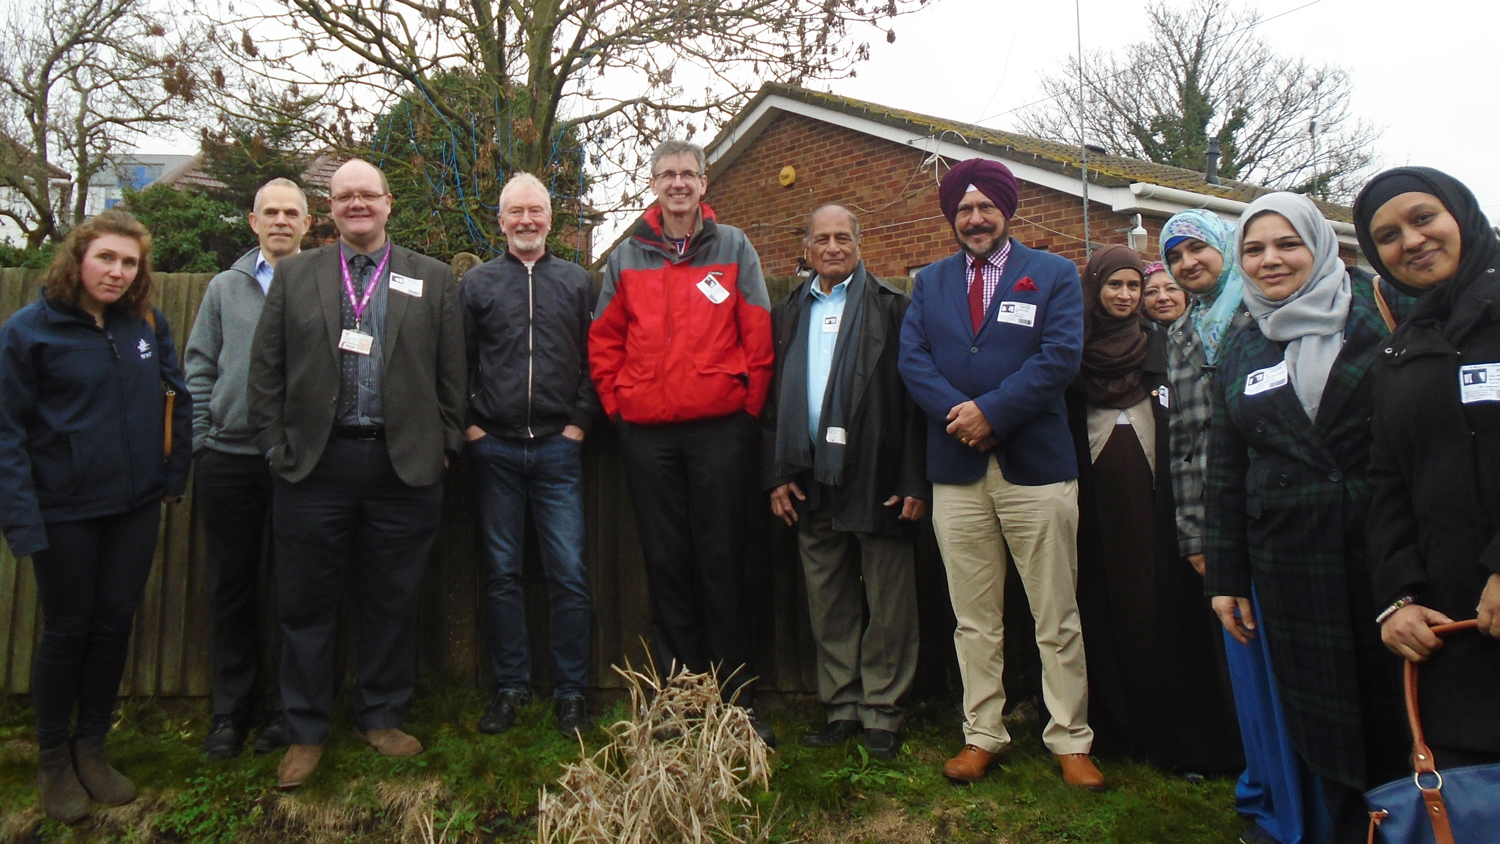 Slough urged to become 'town fit for the future' at World Wetlands Day celebration centred on climate change